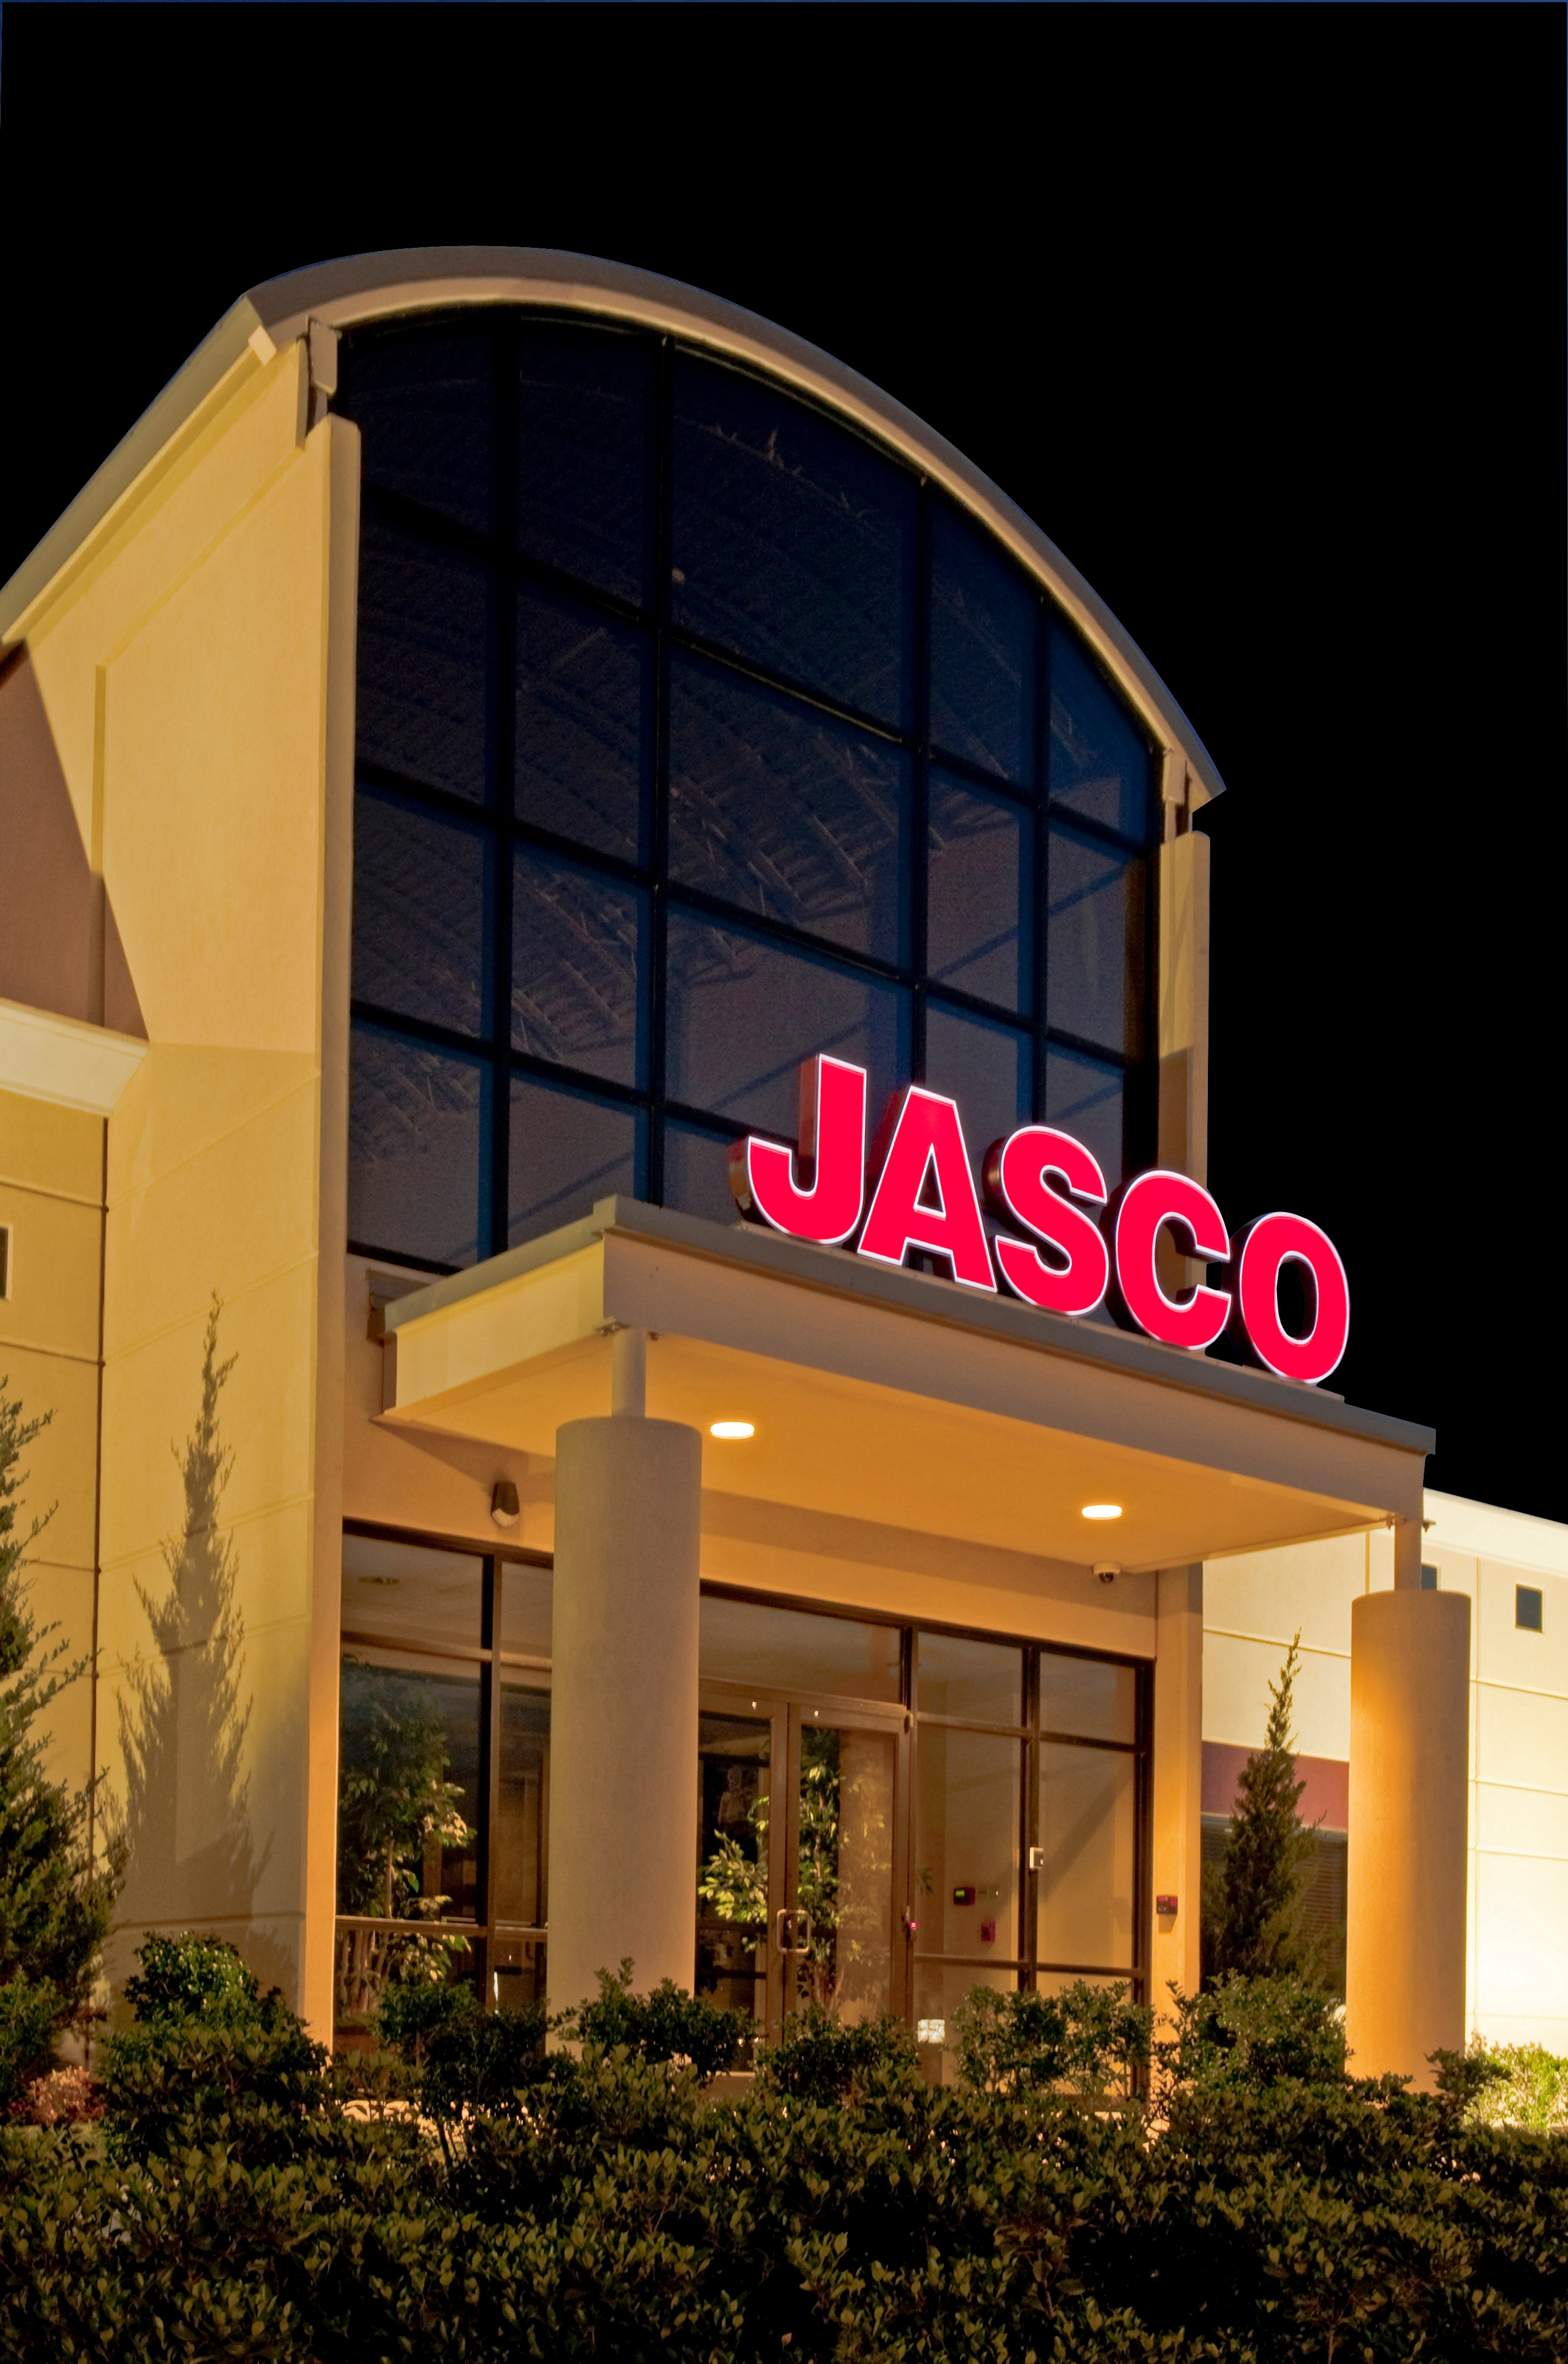 Jasco_night_shot_black_sky